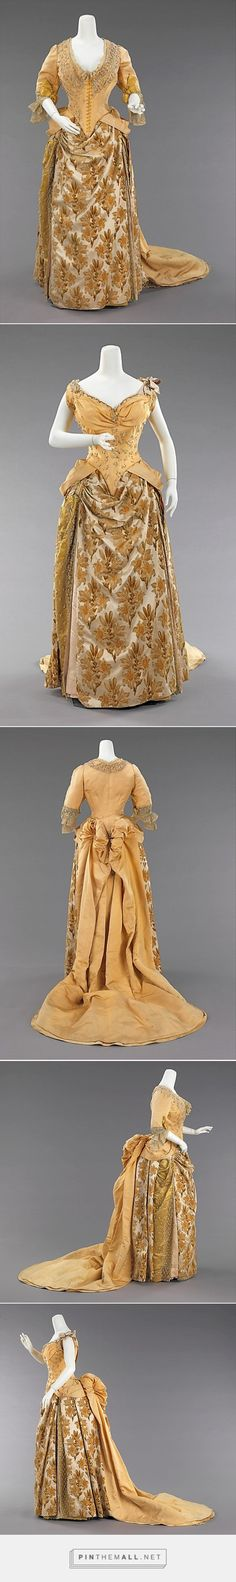 Evening ensemble by House of Worth ca. 1888 French | The Metropolitan Museum of Art